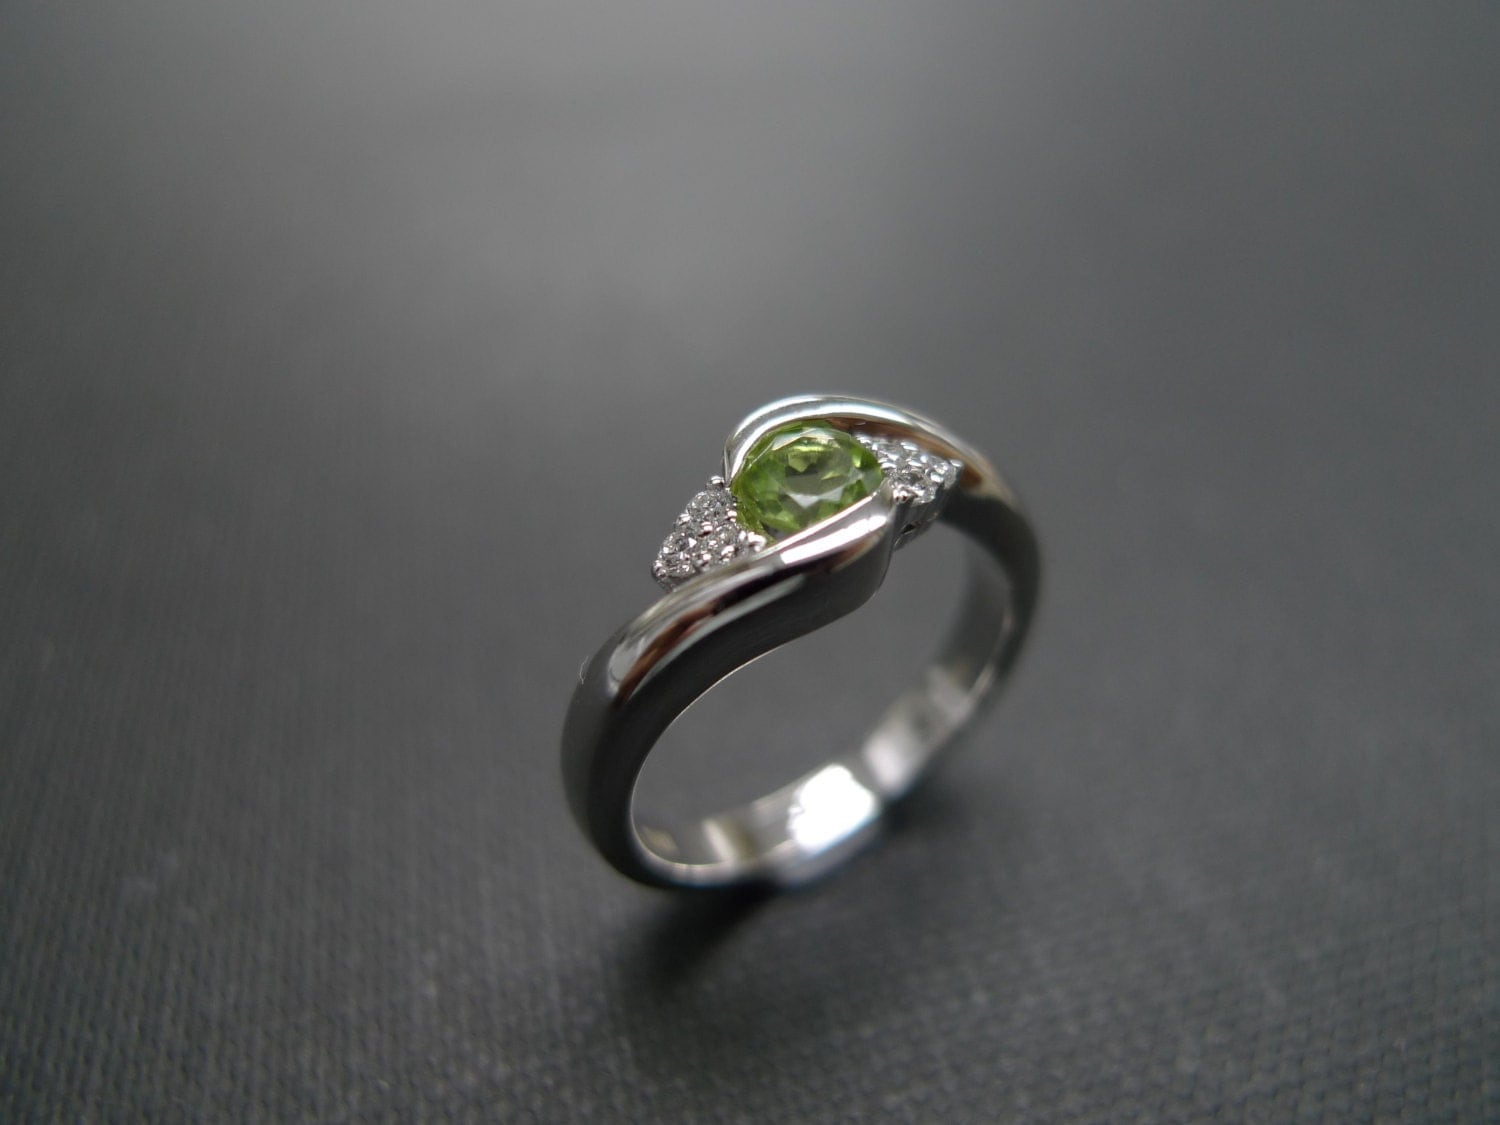 diamond engagement ring with peridot in 14k white gold. Black Bedroom Furniture Sets. Home Design Ideas